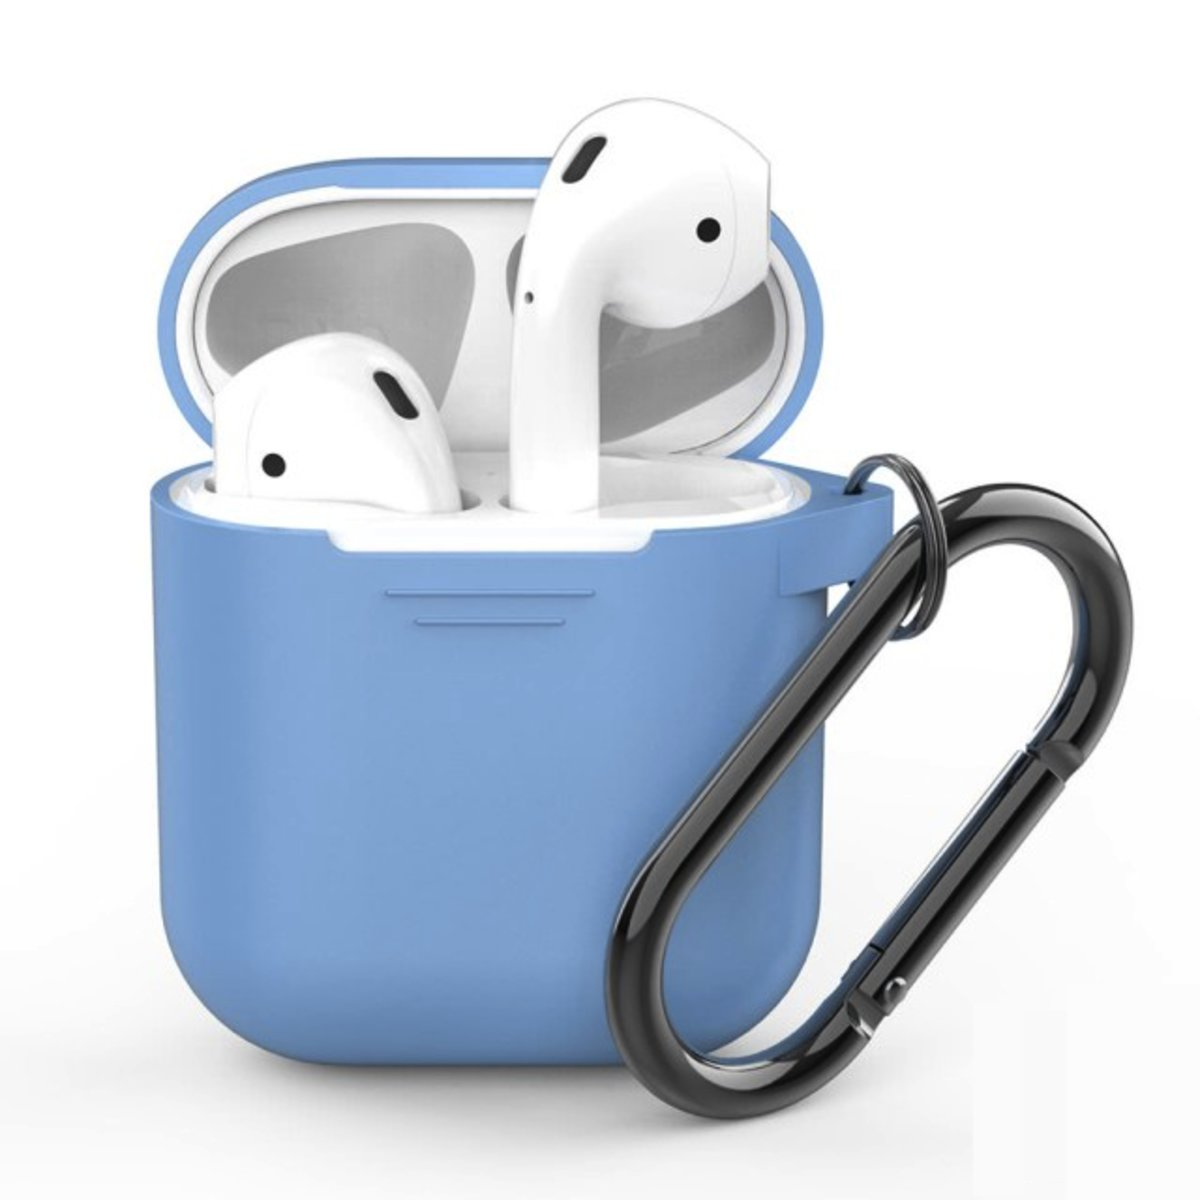 PodFit 2.0  Silicone Case Protective Cover Skin Compatible with Apple AirPods 2 & 1 SKY BLUE